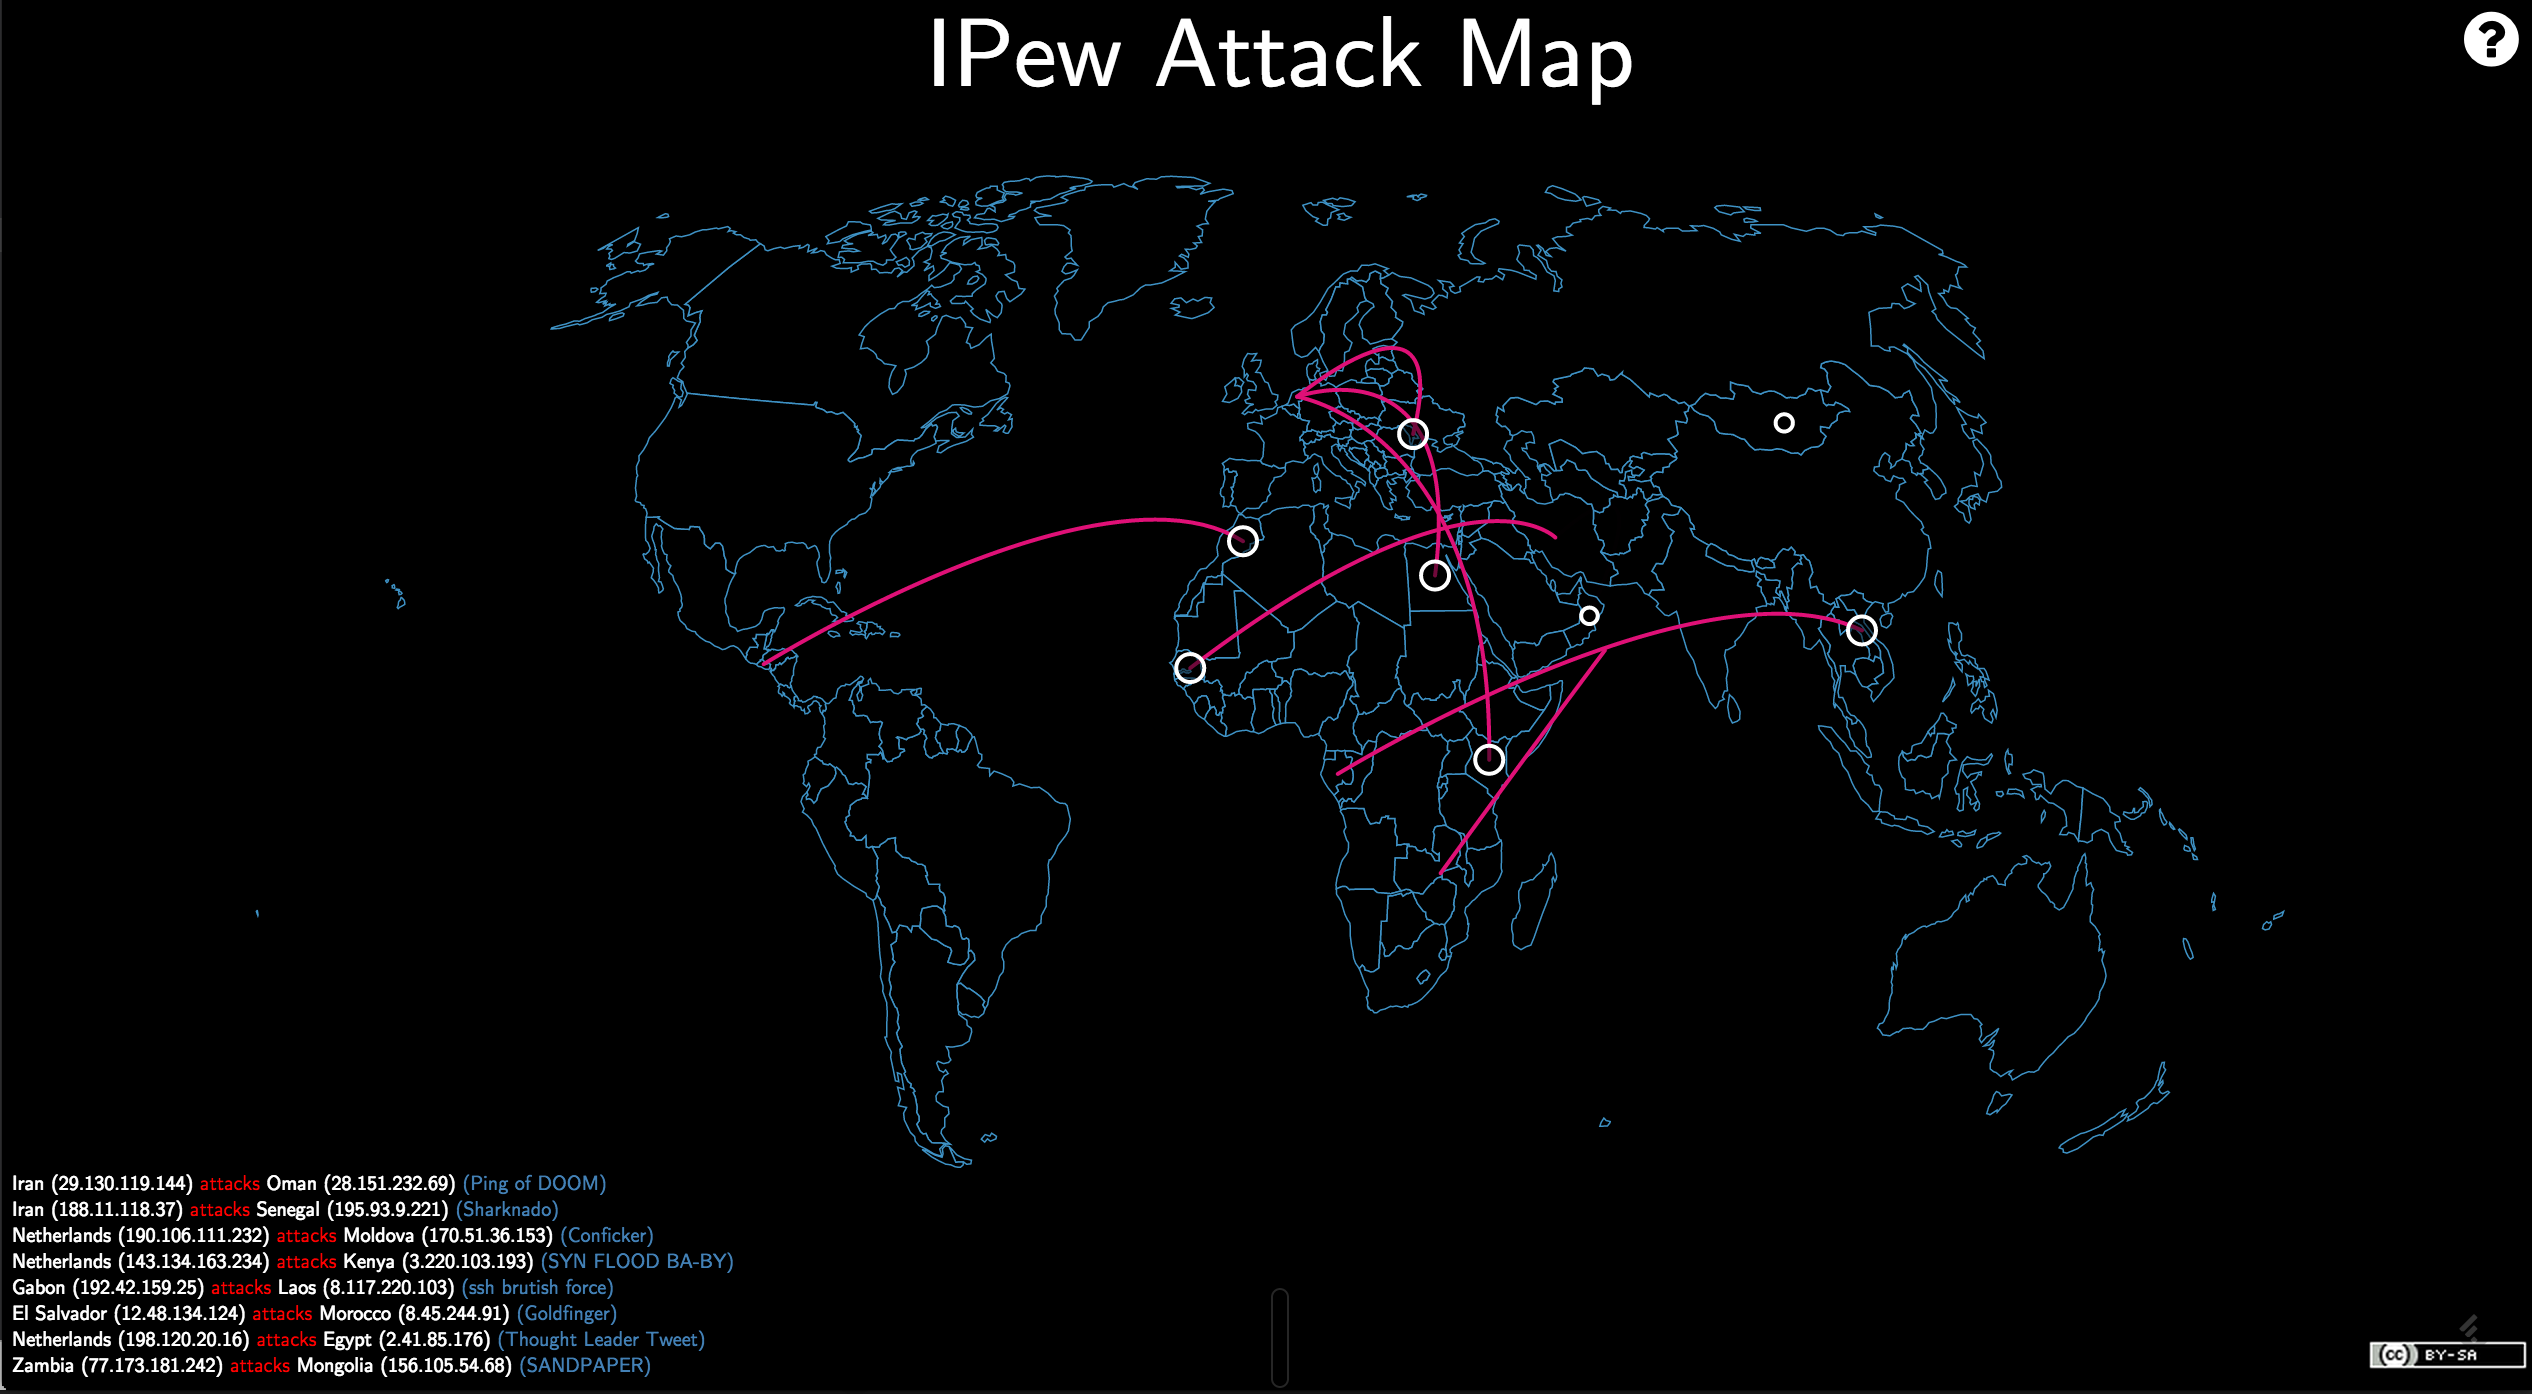 Roll Your Own IP Attack Graphs with IPew